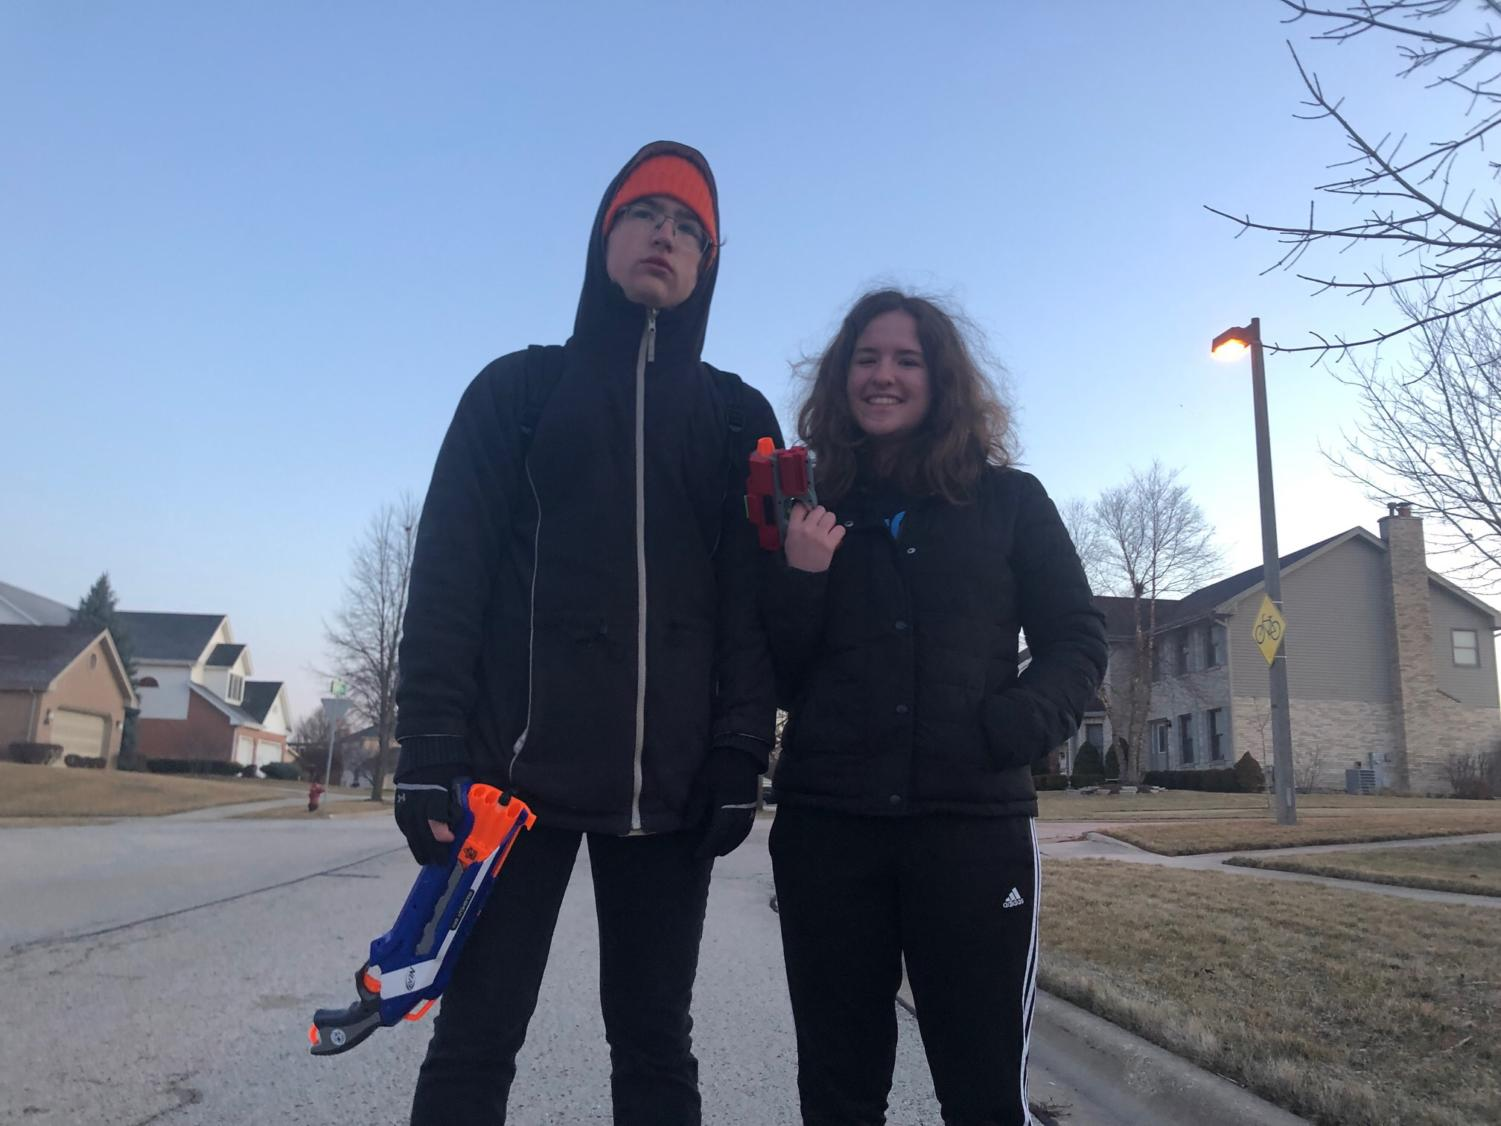 Kelly Jankowski assassinated Scott Pape with her Nerf gun while leaving her car.